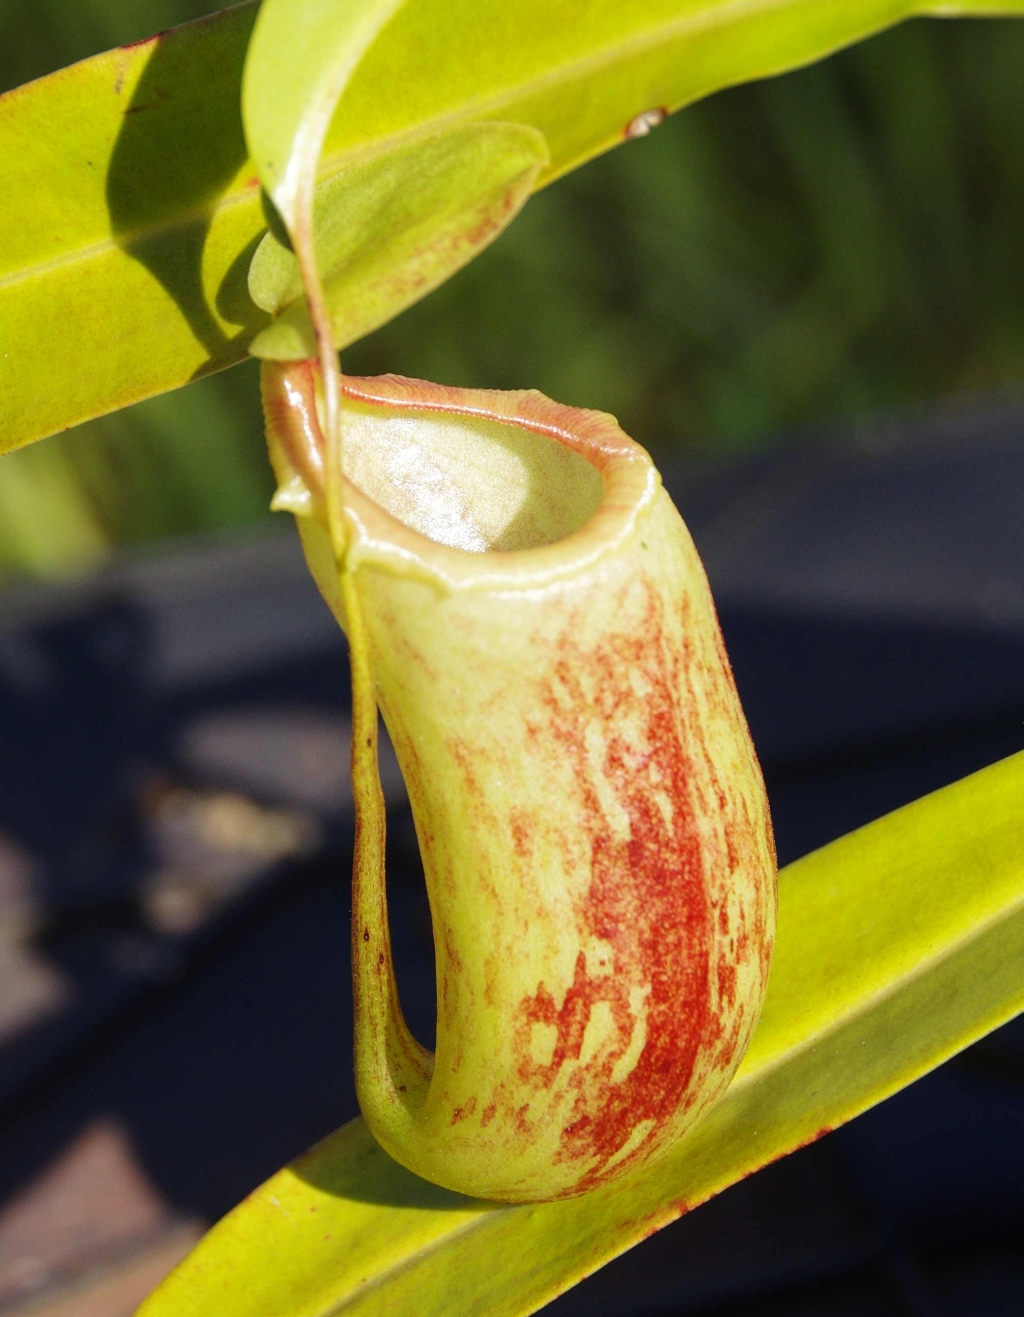 Intermediate pitcher, Nepenthes 'Red Leopard'